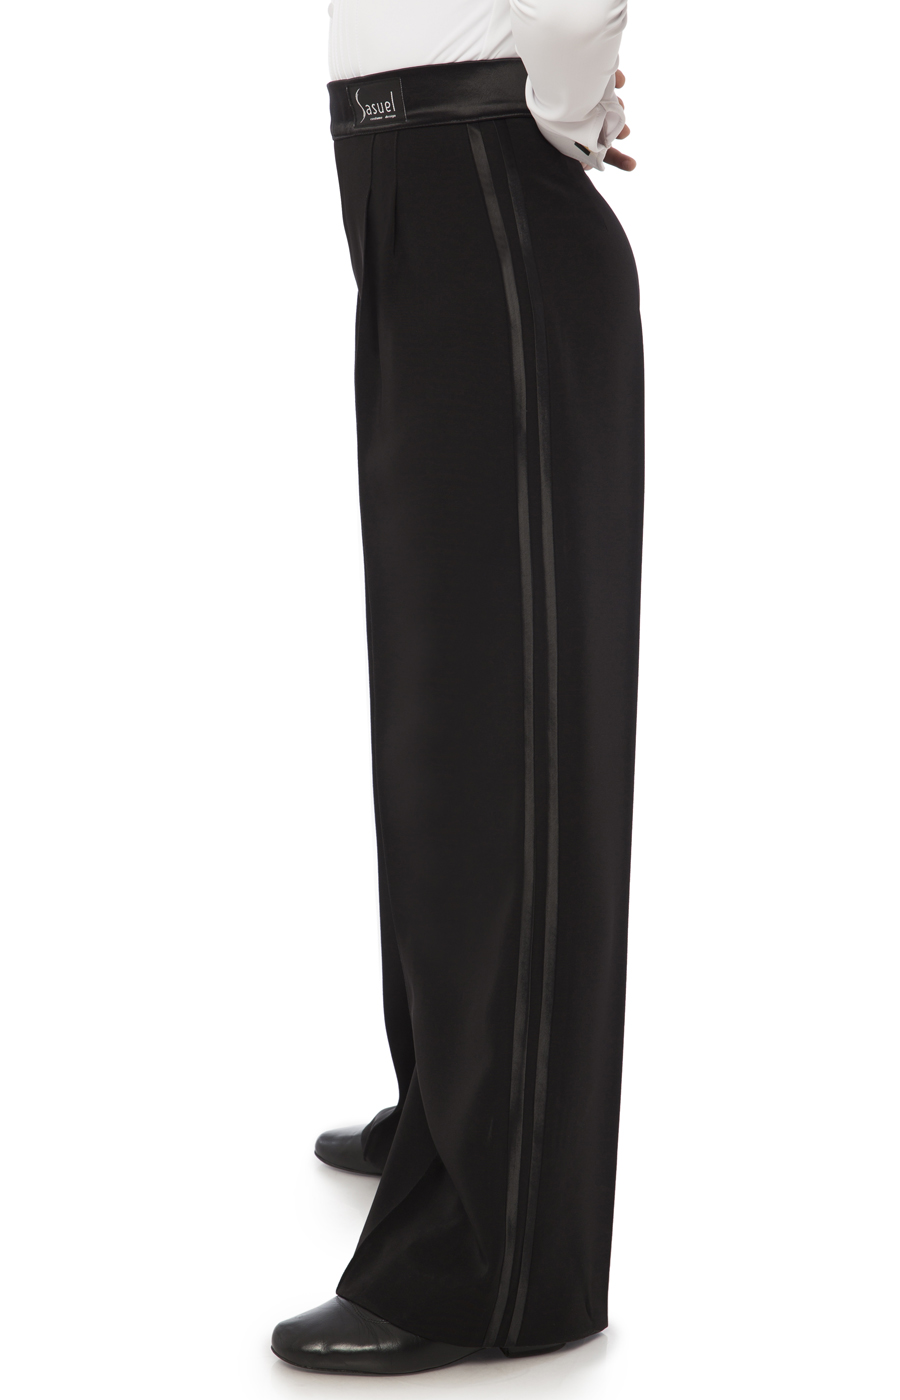 Juvenile trouser with double satin binding